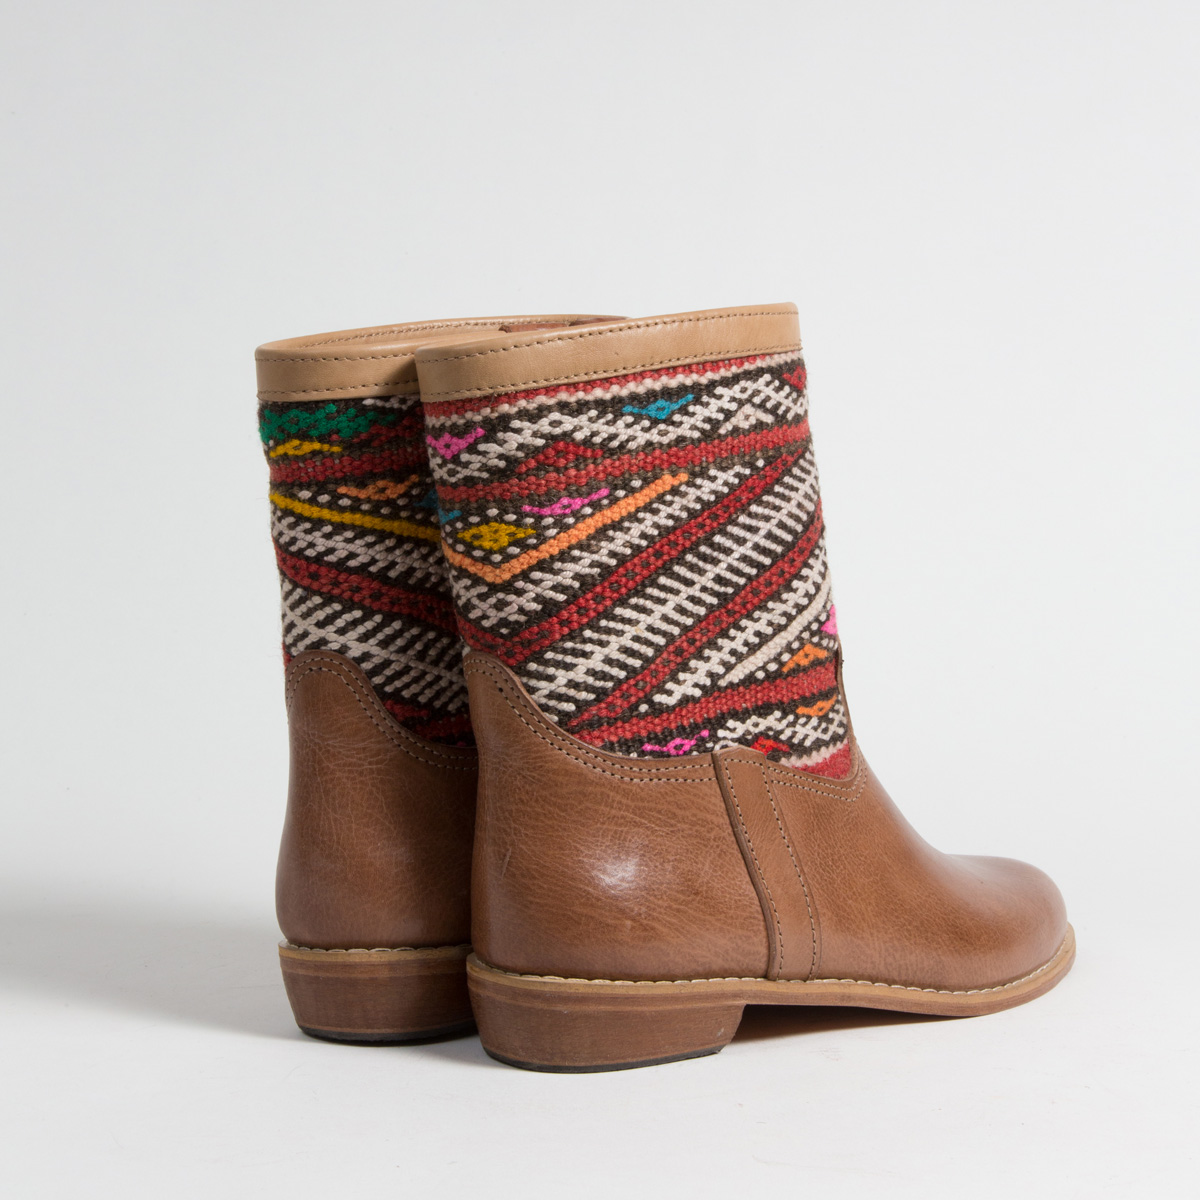 Bottines Kilim cuir mababouche artisanales (Réf. MCH6-42)